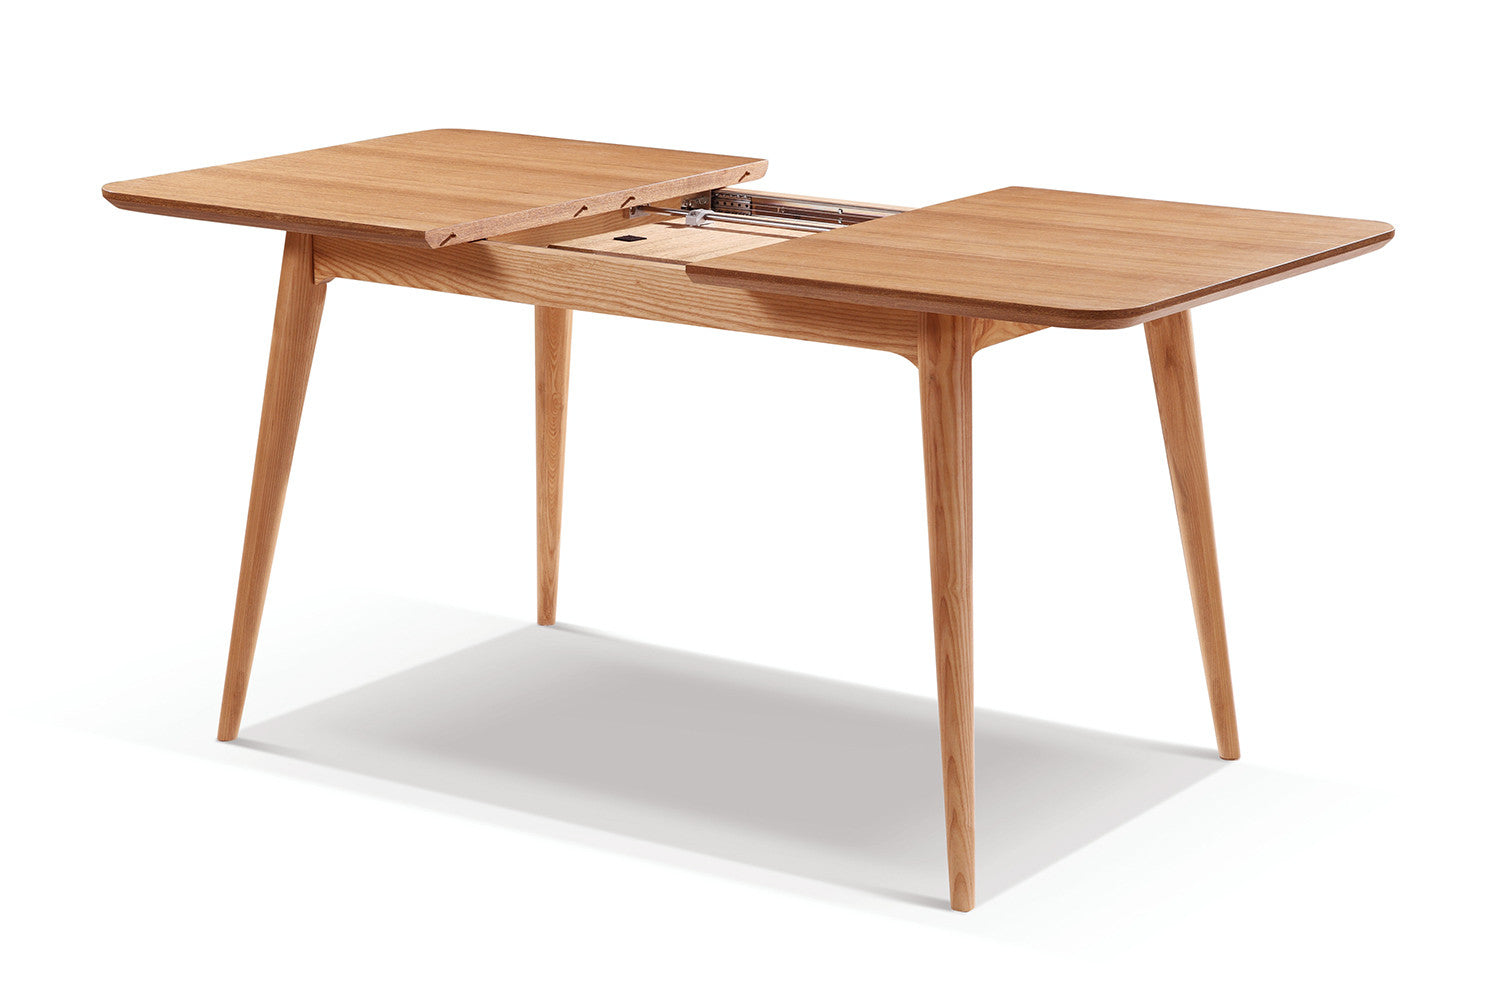 Table de salle manger extensible en bois adda dewarens for Table a manger extensible